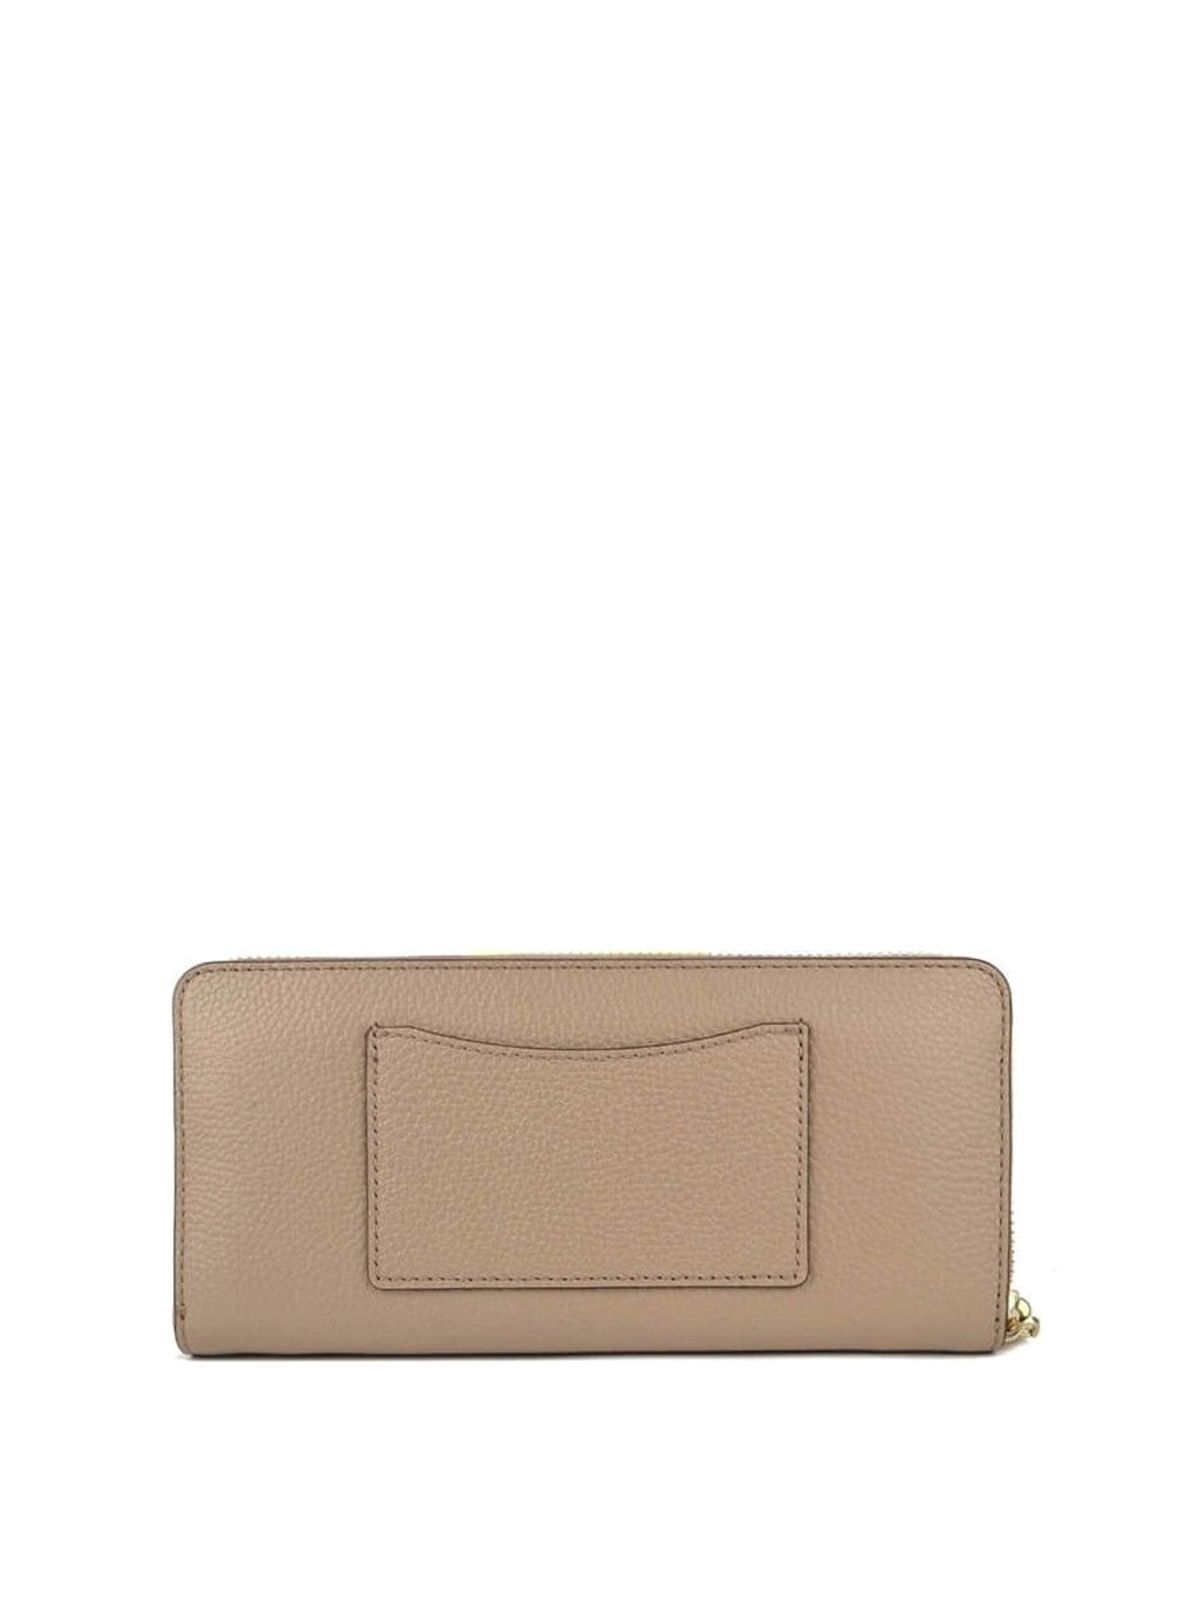 MICHAEL KORS WOMEN'S 32T8TF6Z3L208 BEIGE LEATHER WALLET